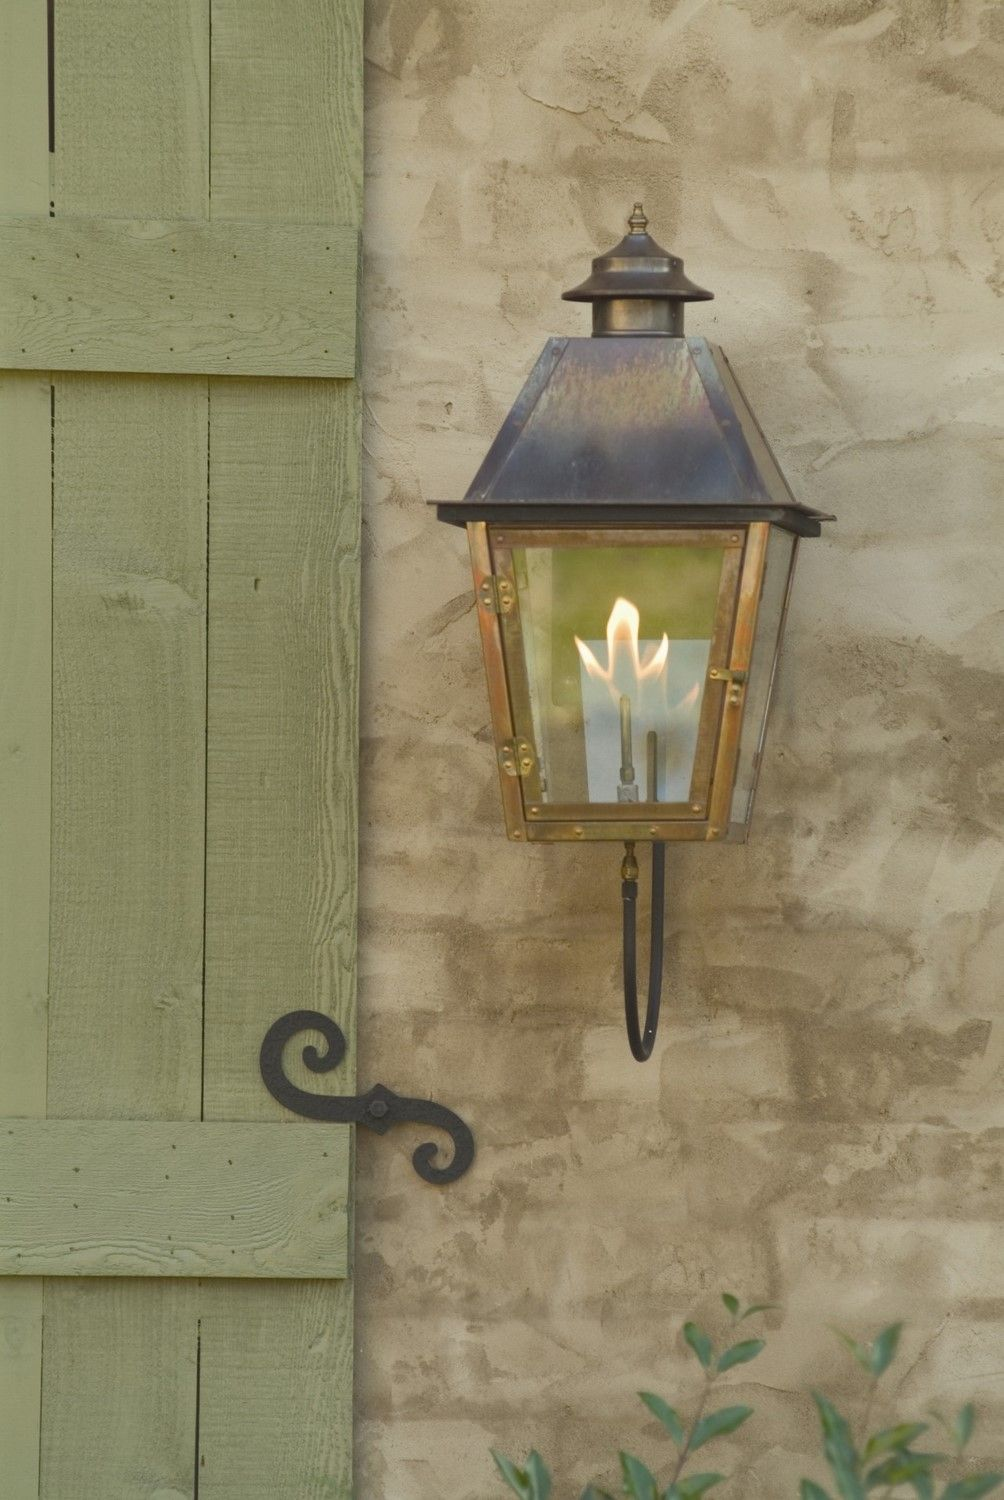 Carolina Lanterns Gas Lamp Atlas Wall Mount